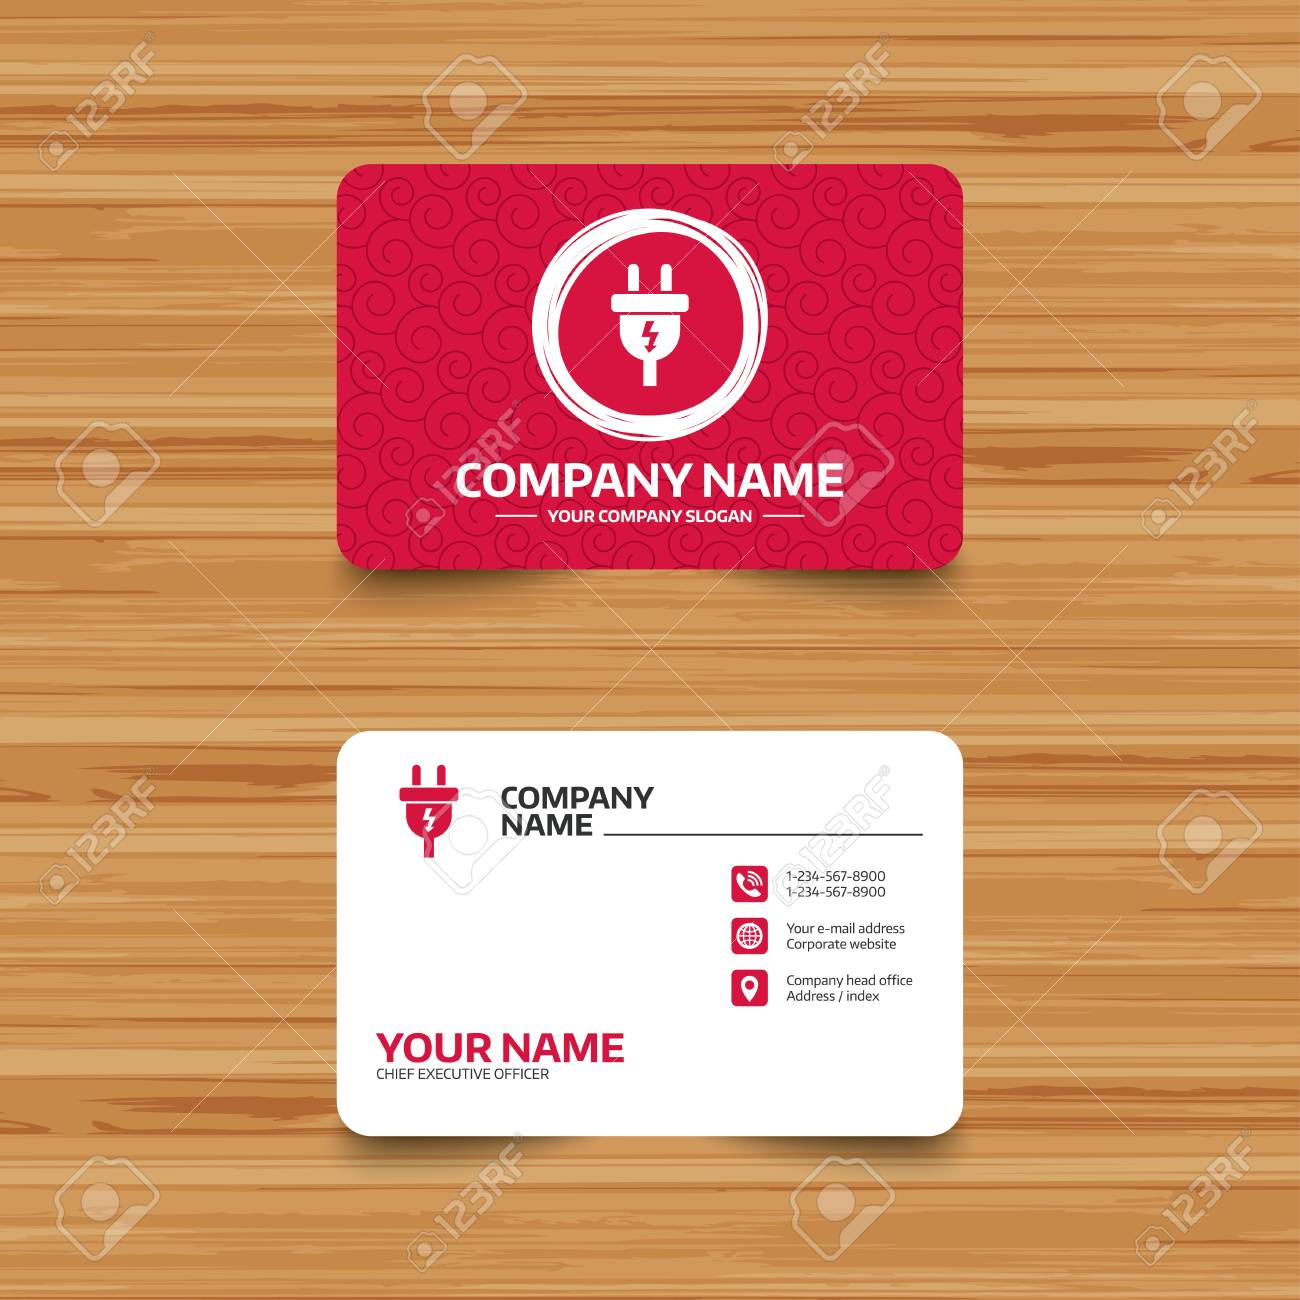 Business card template with texture electric plug sign icon business card template with texture electric plug sign icon power energy symbol lightning colourmoves